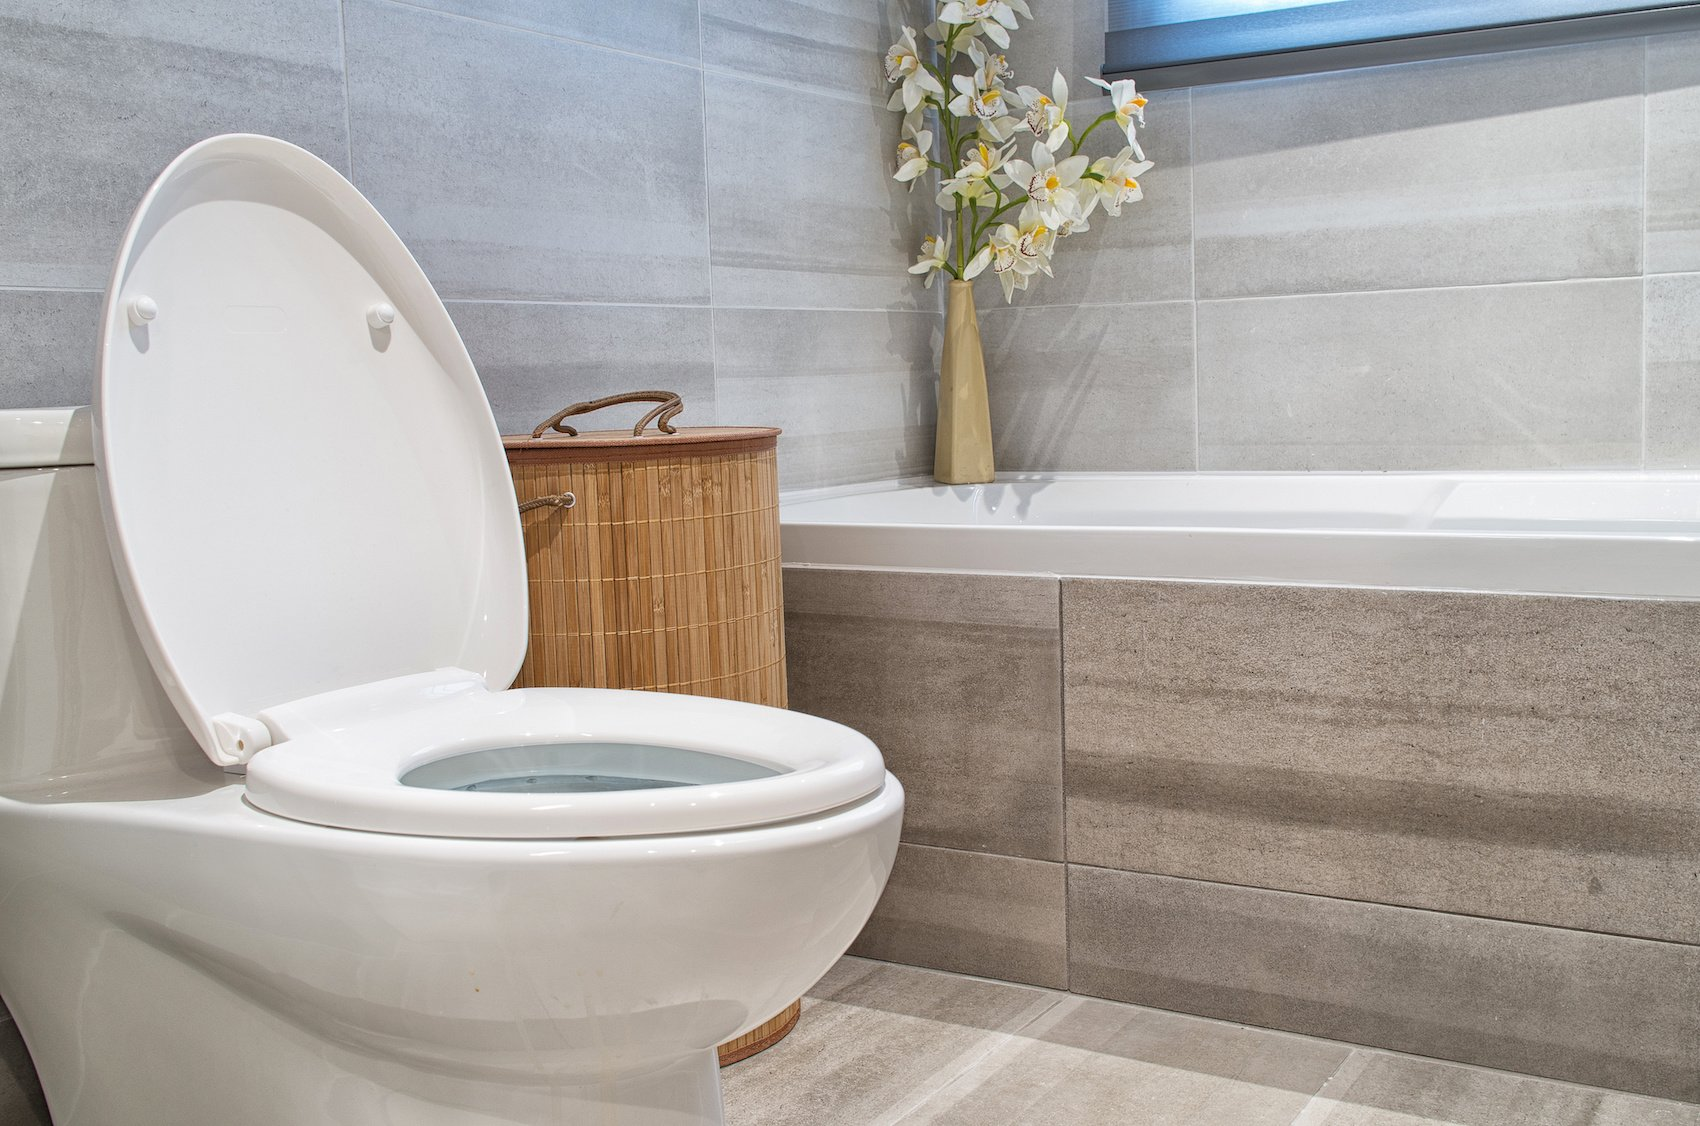 cleaning company kelowna bathroom all about details cleaning services